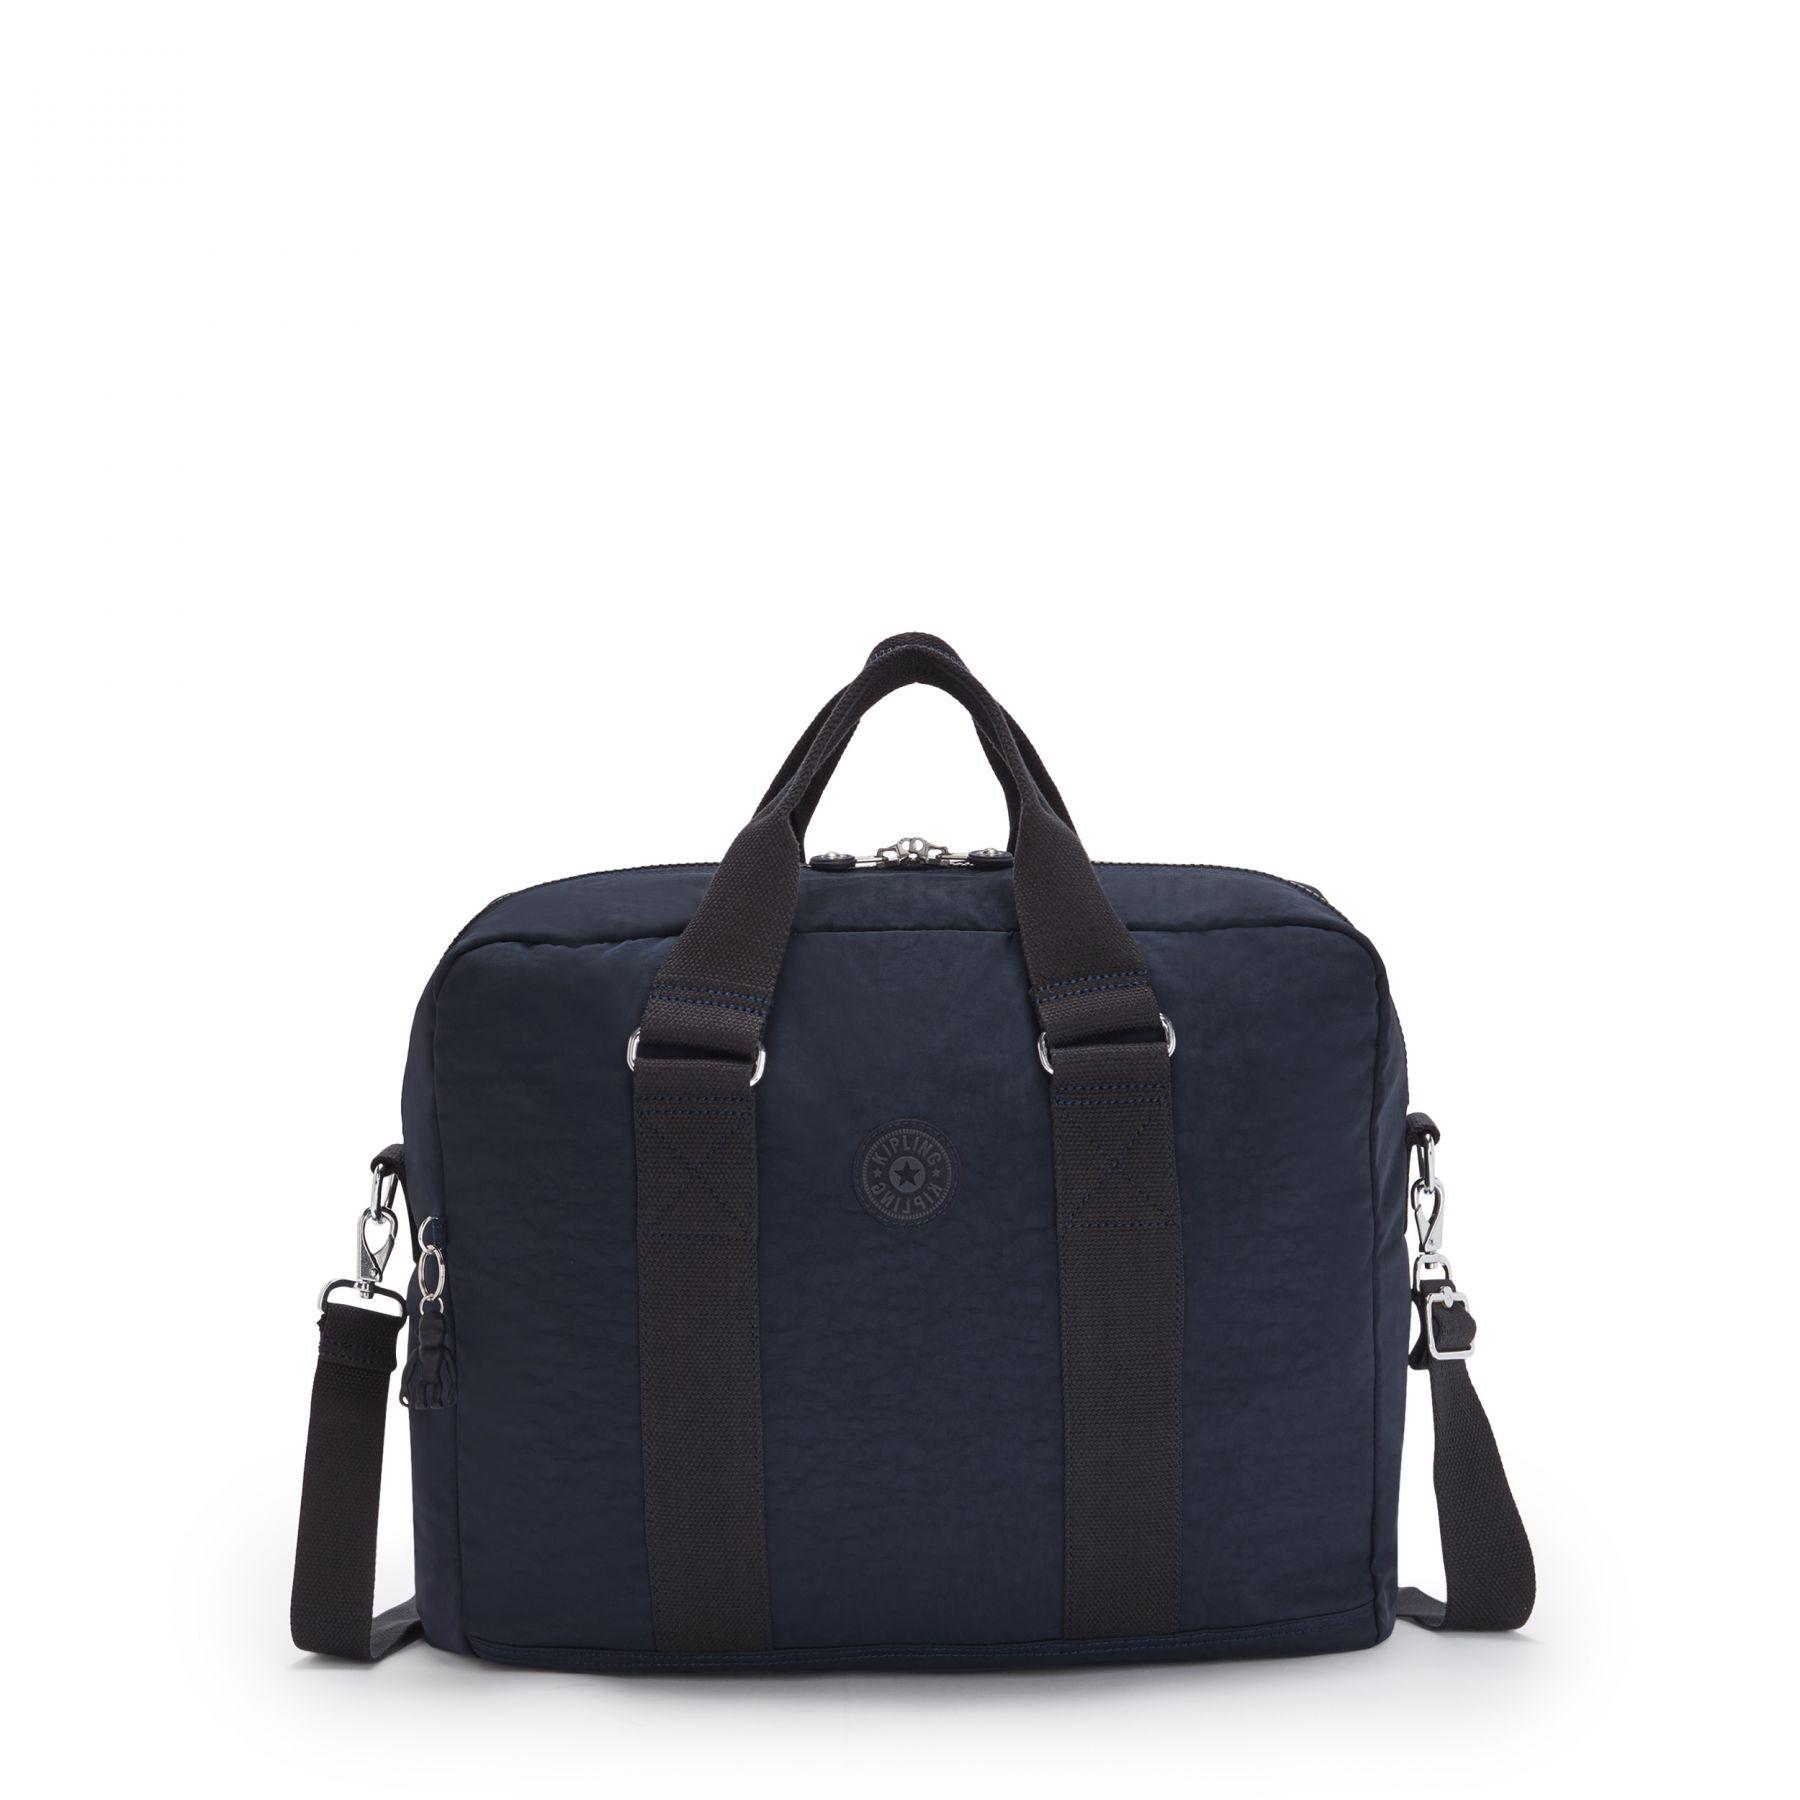 SOY LUGGAGE by Kipling